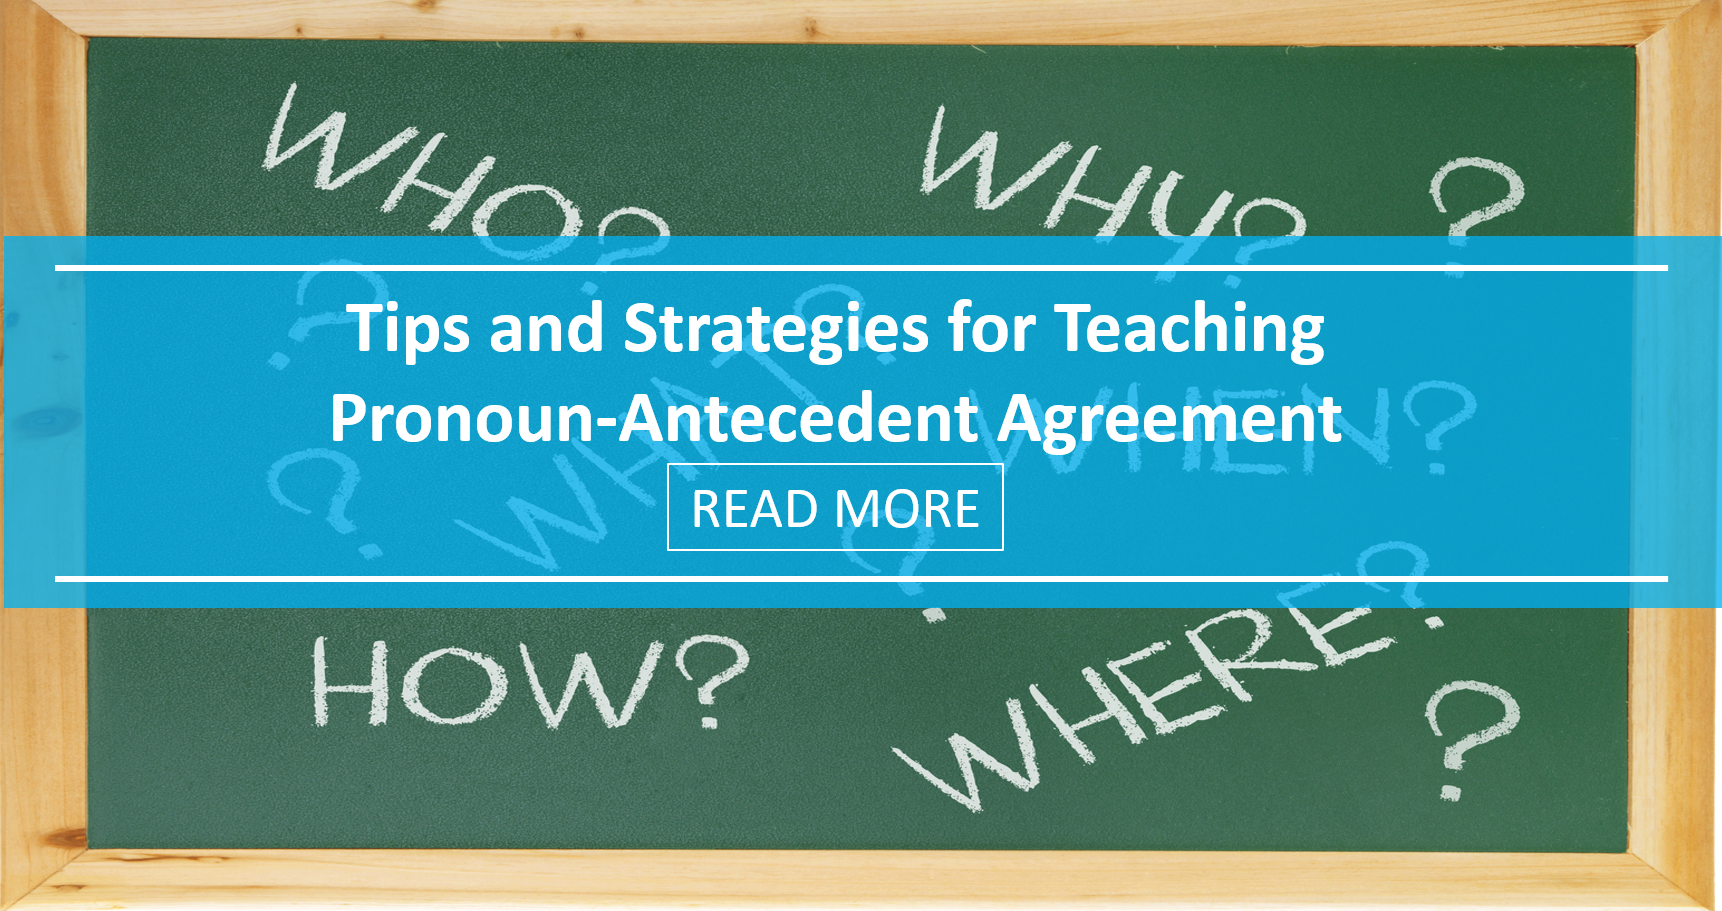 Tips and Strategies for Teaching Pronoun-Antecedent Agreement